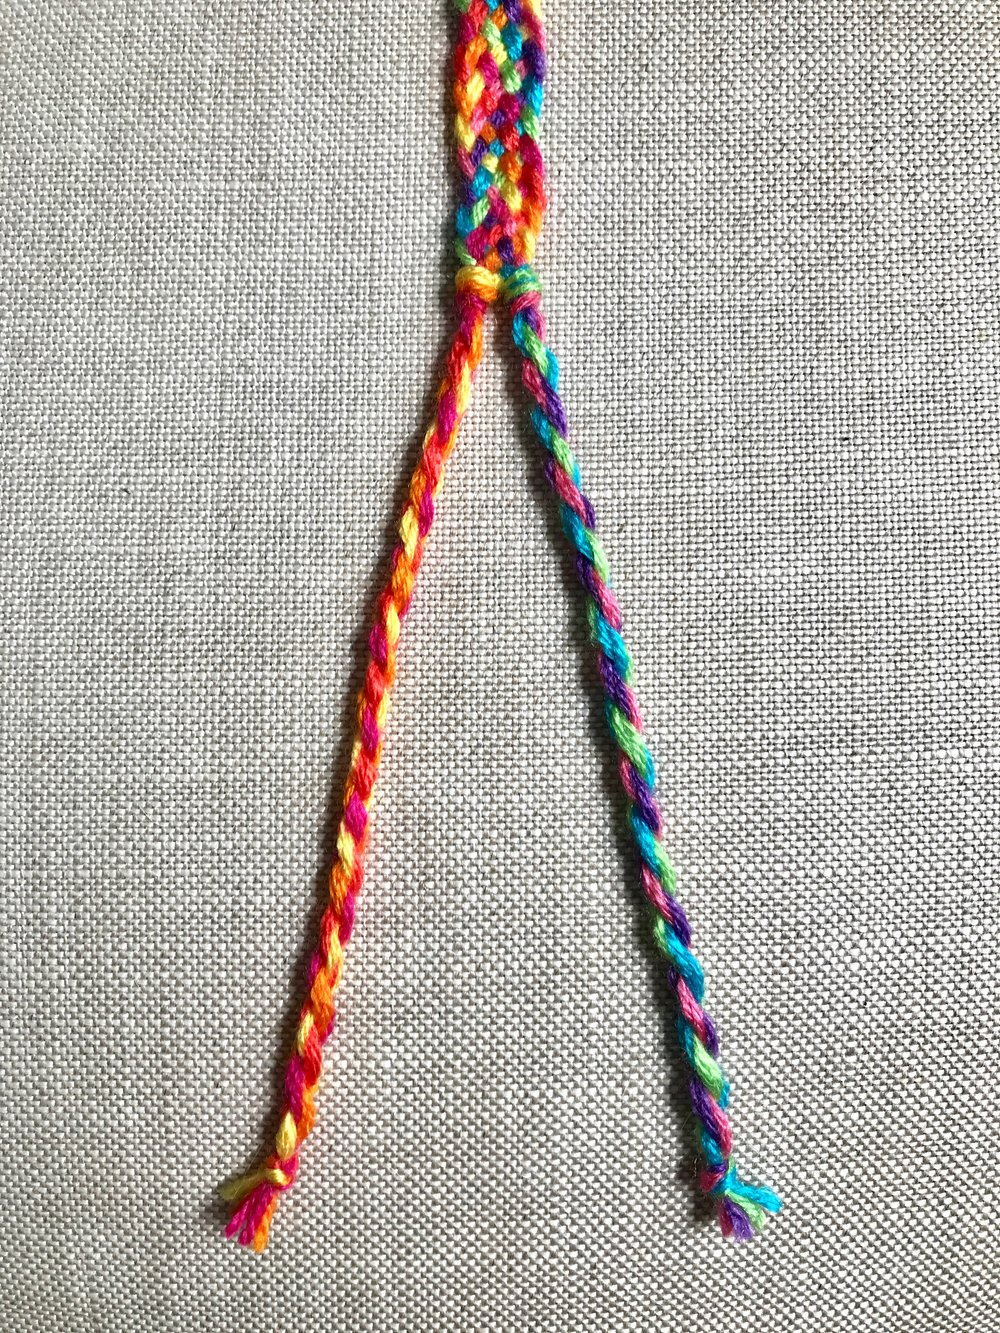 12. Repeat steps 19-24 from the Rainbow Chevron Bracelet to create the two rope ties.